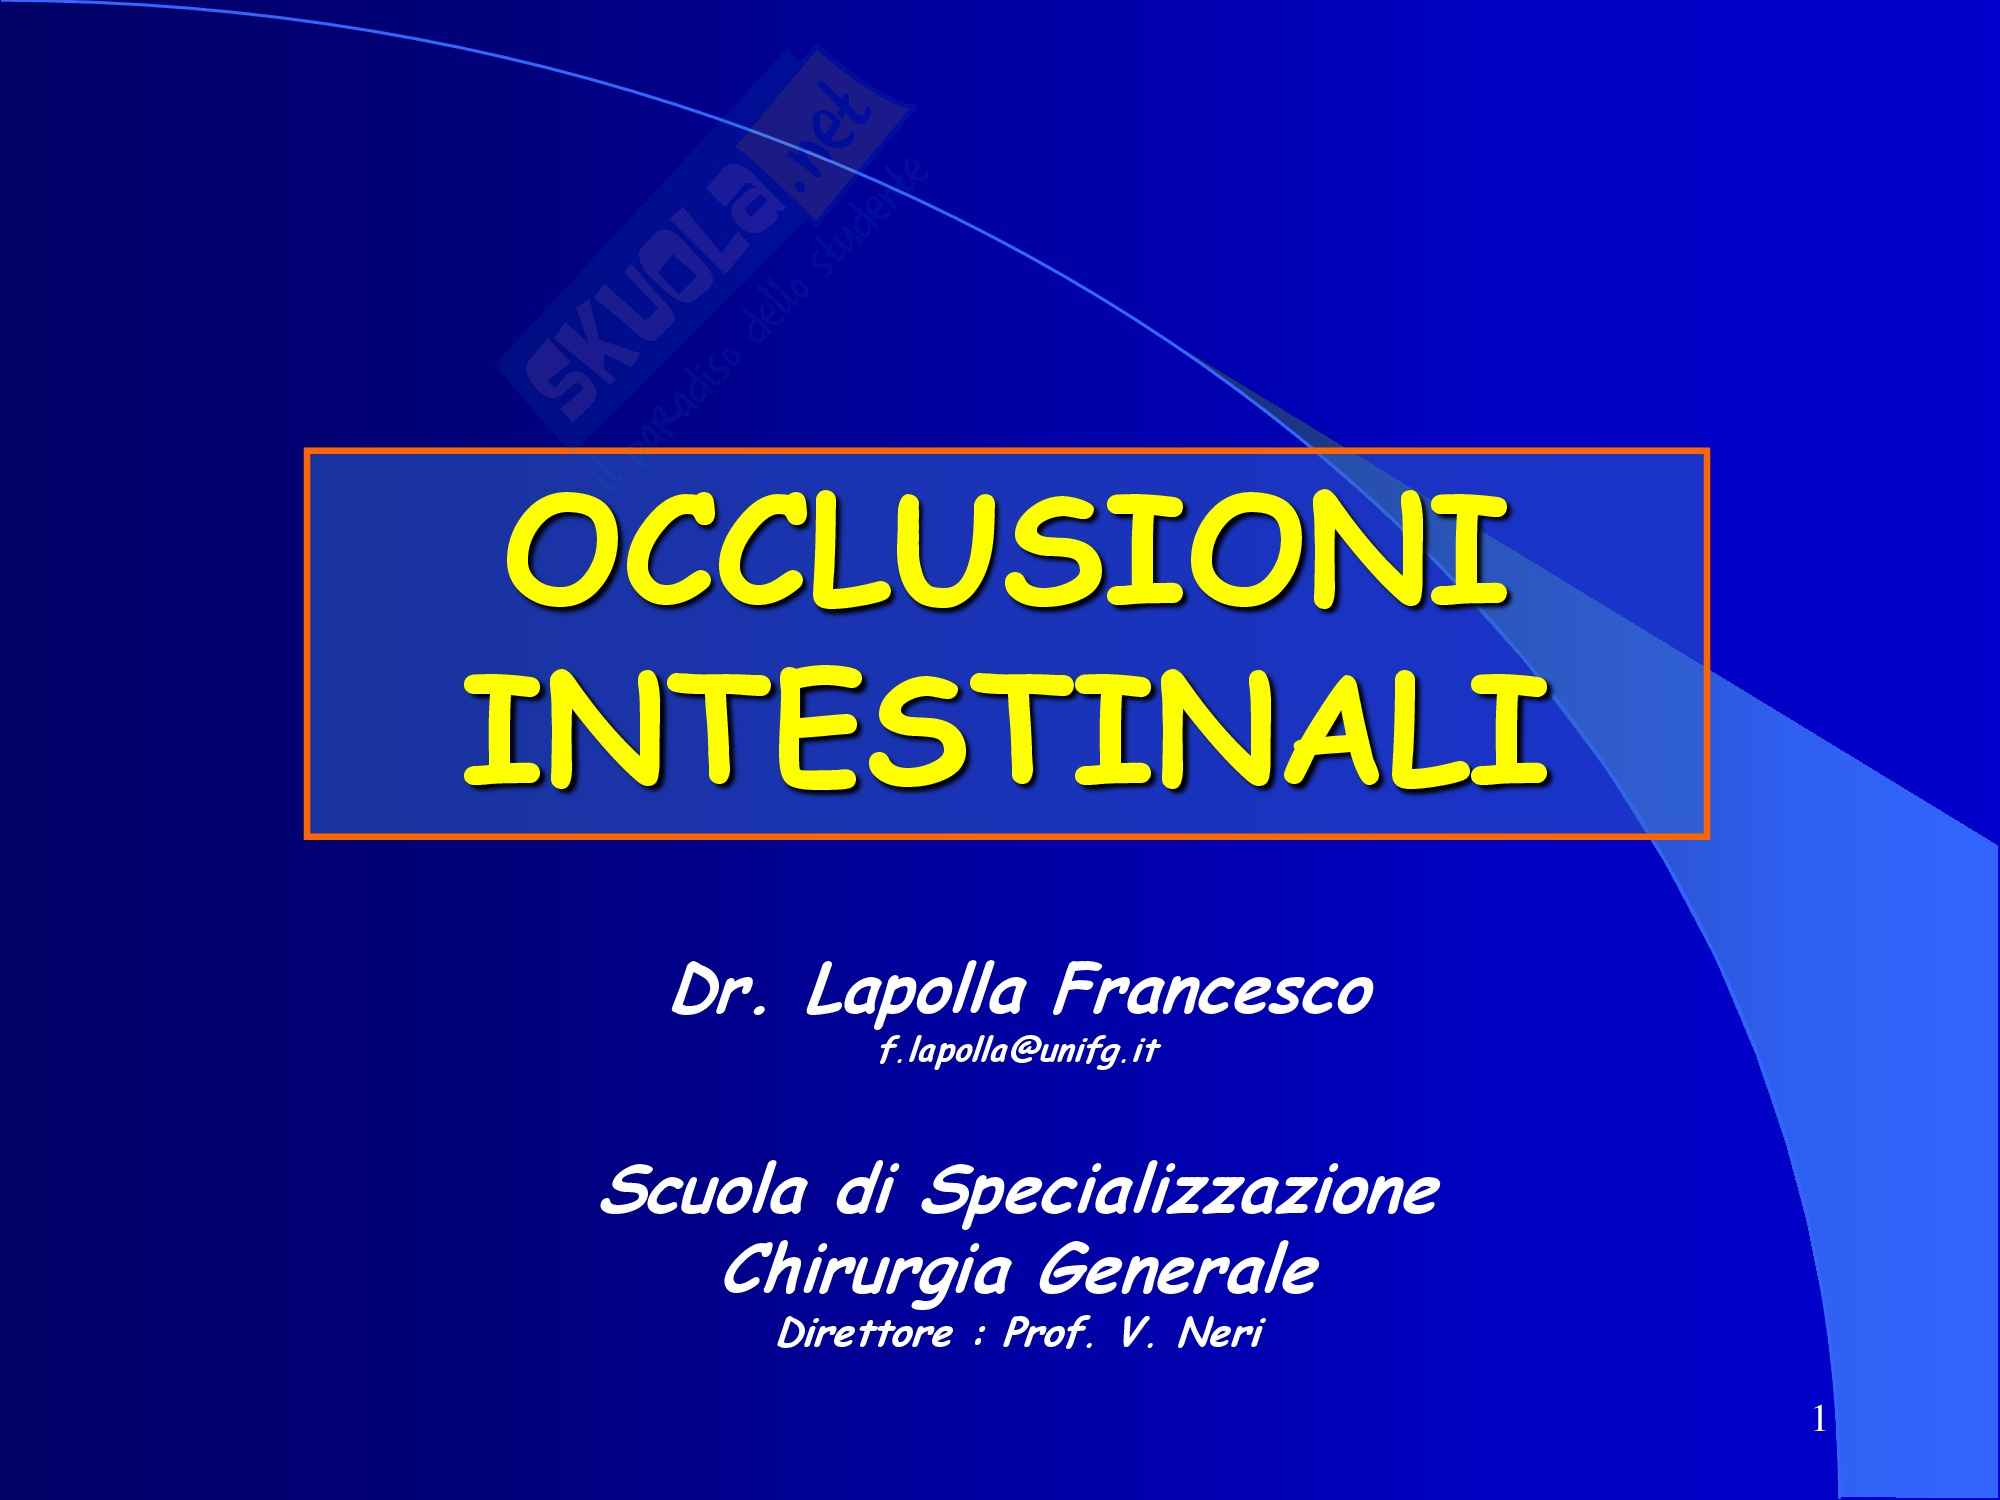 Occlusione Intestinale - parte 2